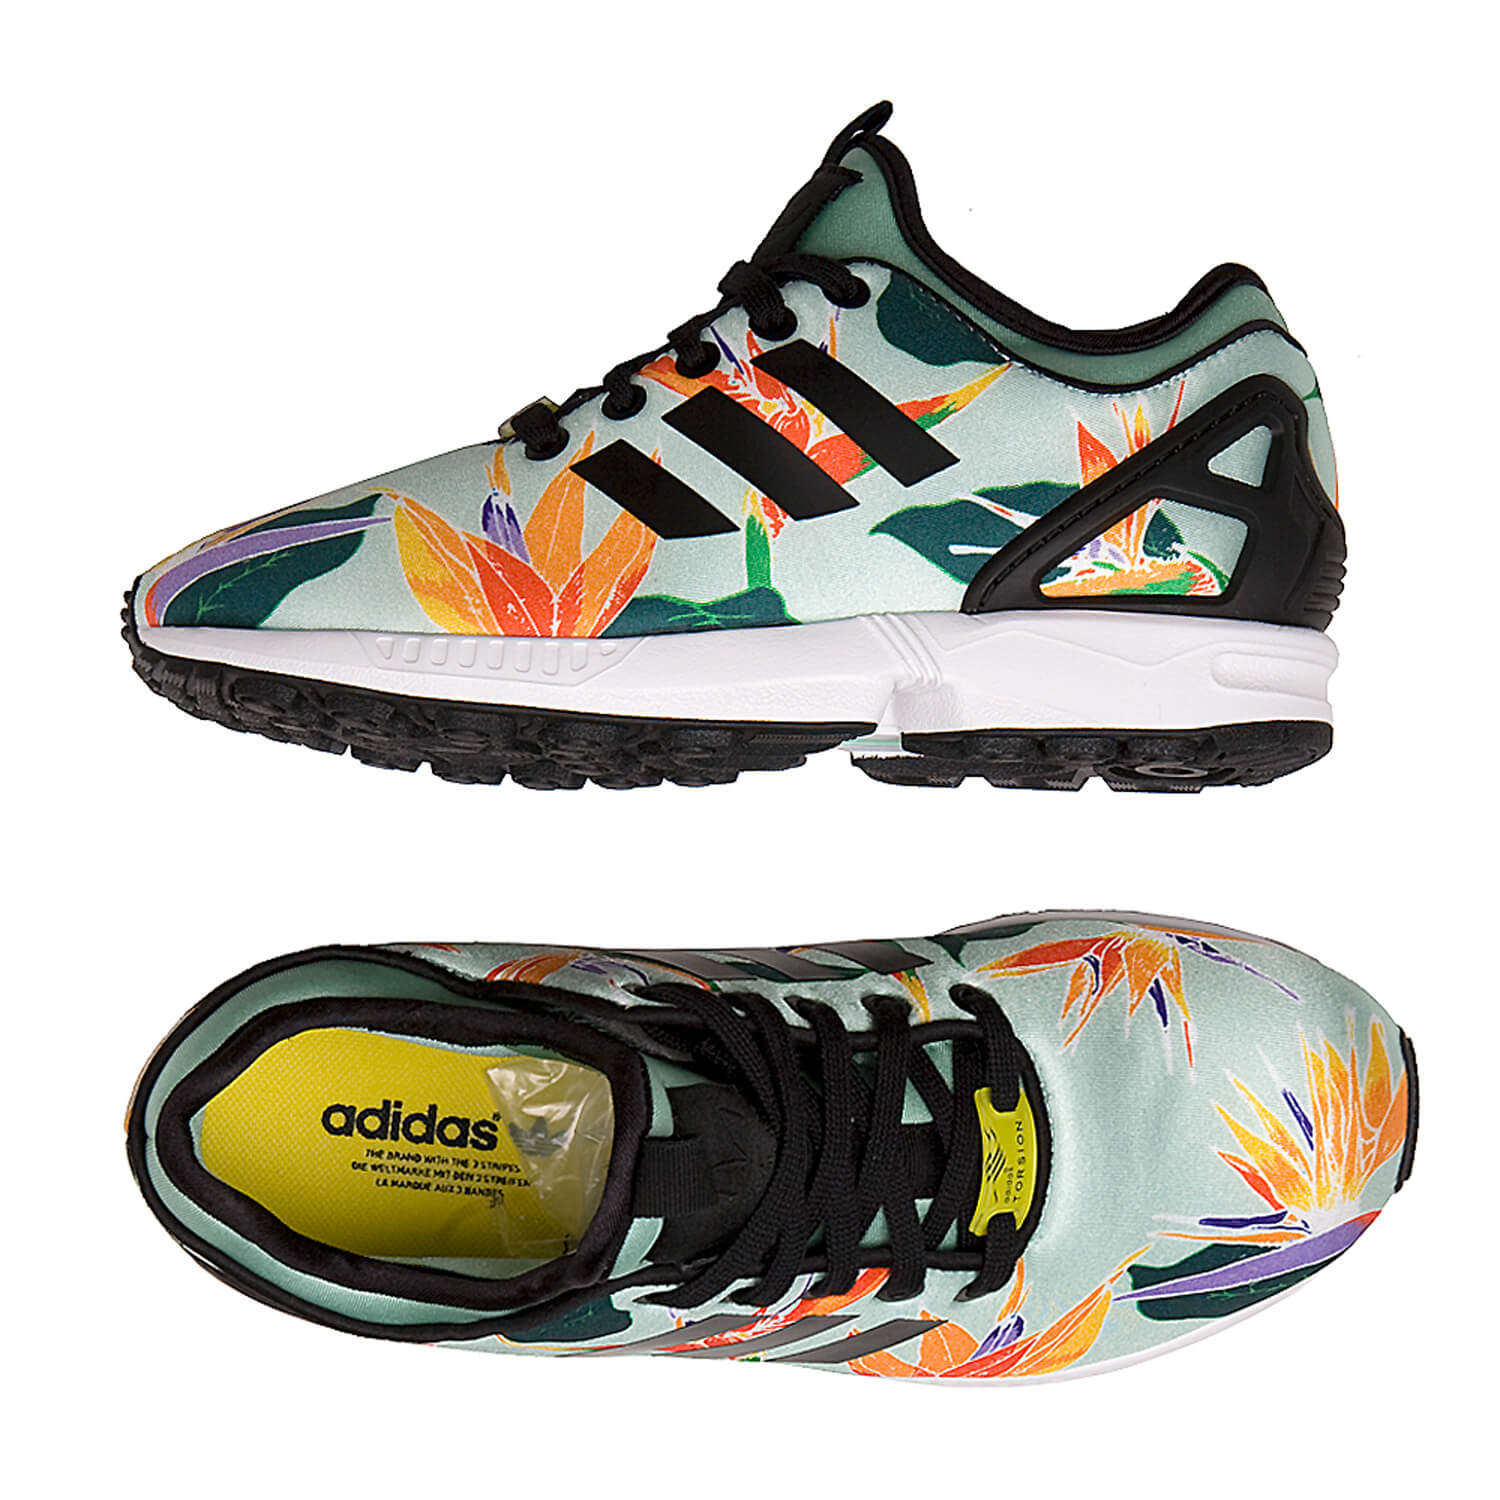 adidas zx flux nps damen schuhe blue green blumen. Black Bedroom Furniture Sets. Home Design Ideas